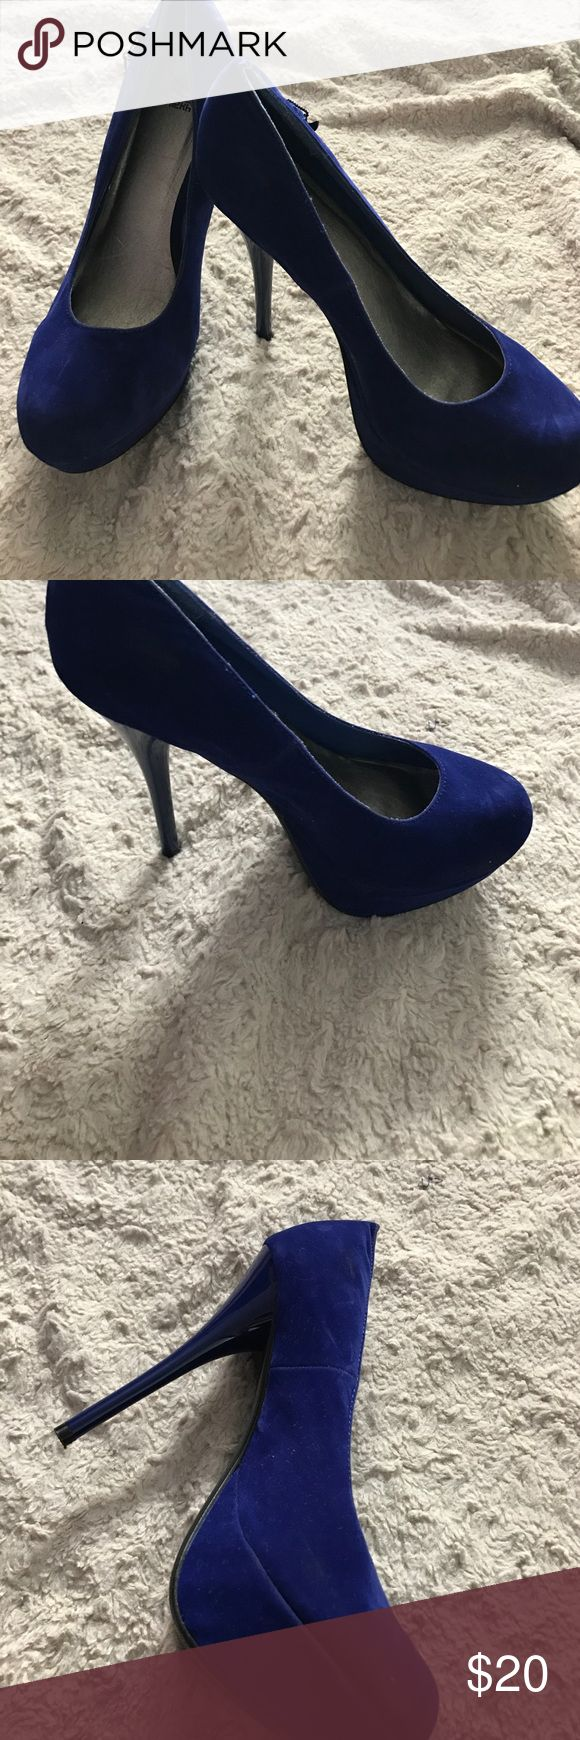 Suede royal blue pumps Size 10. Great condition shiek Shoes Heels